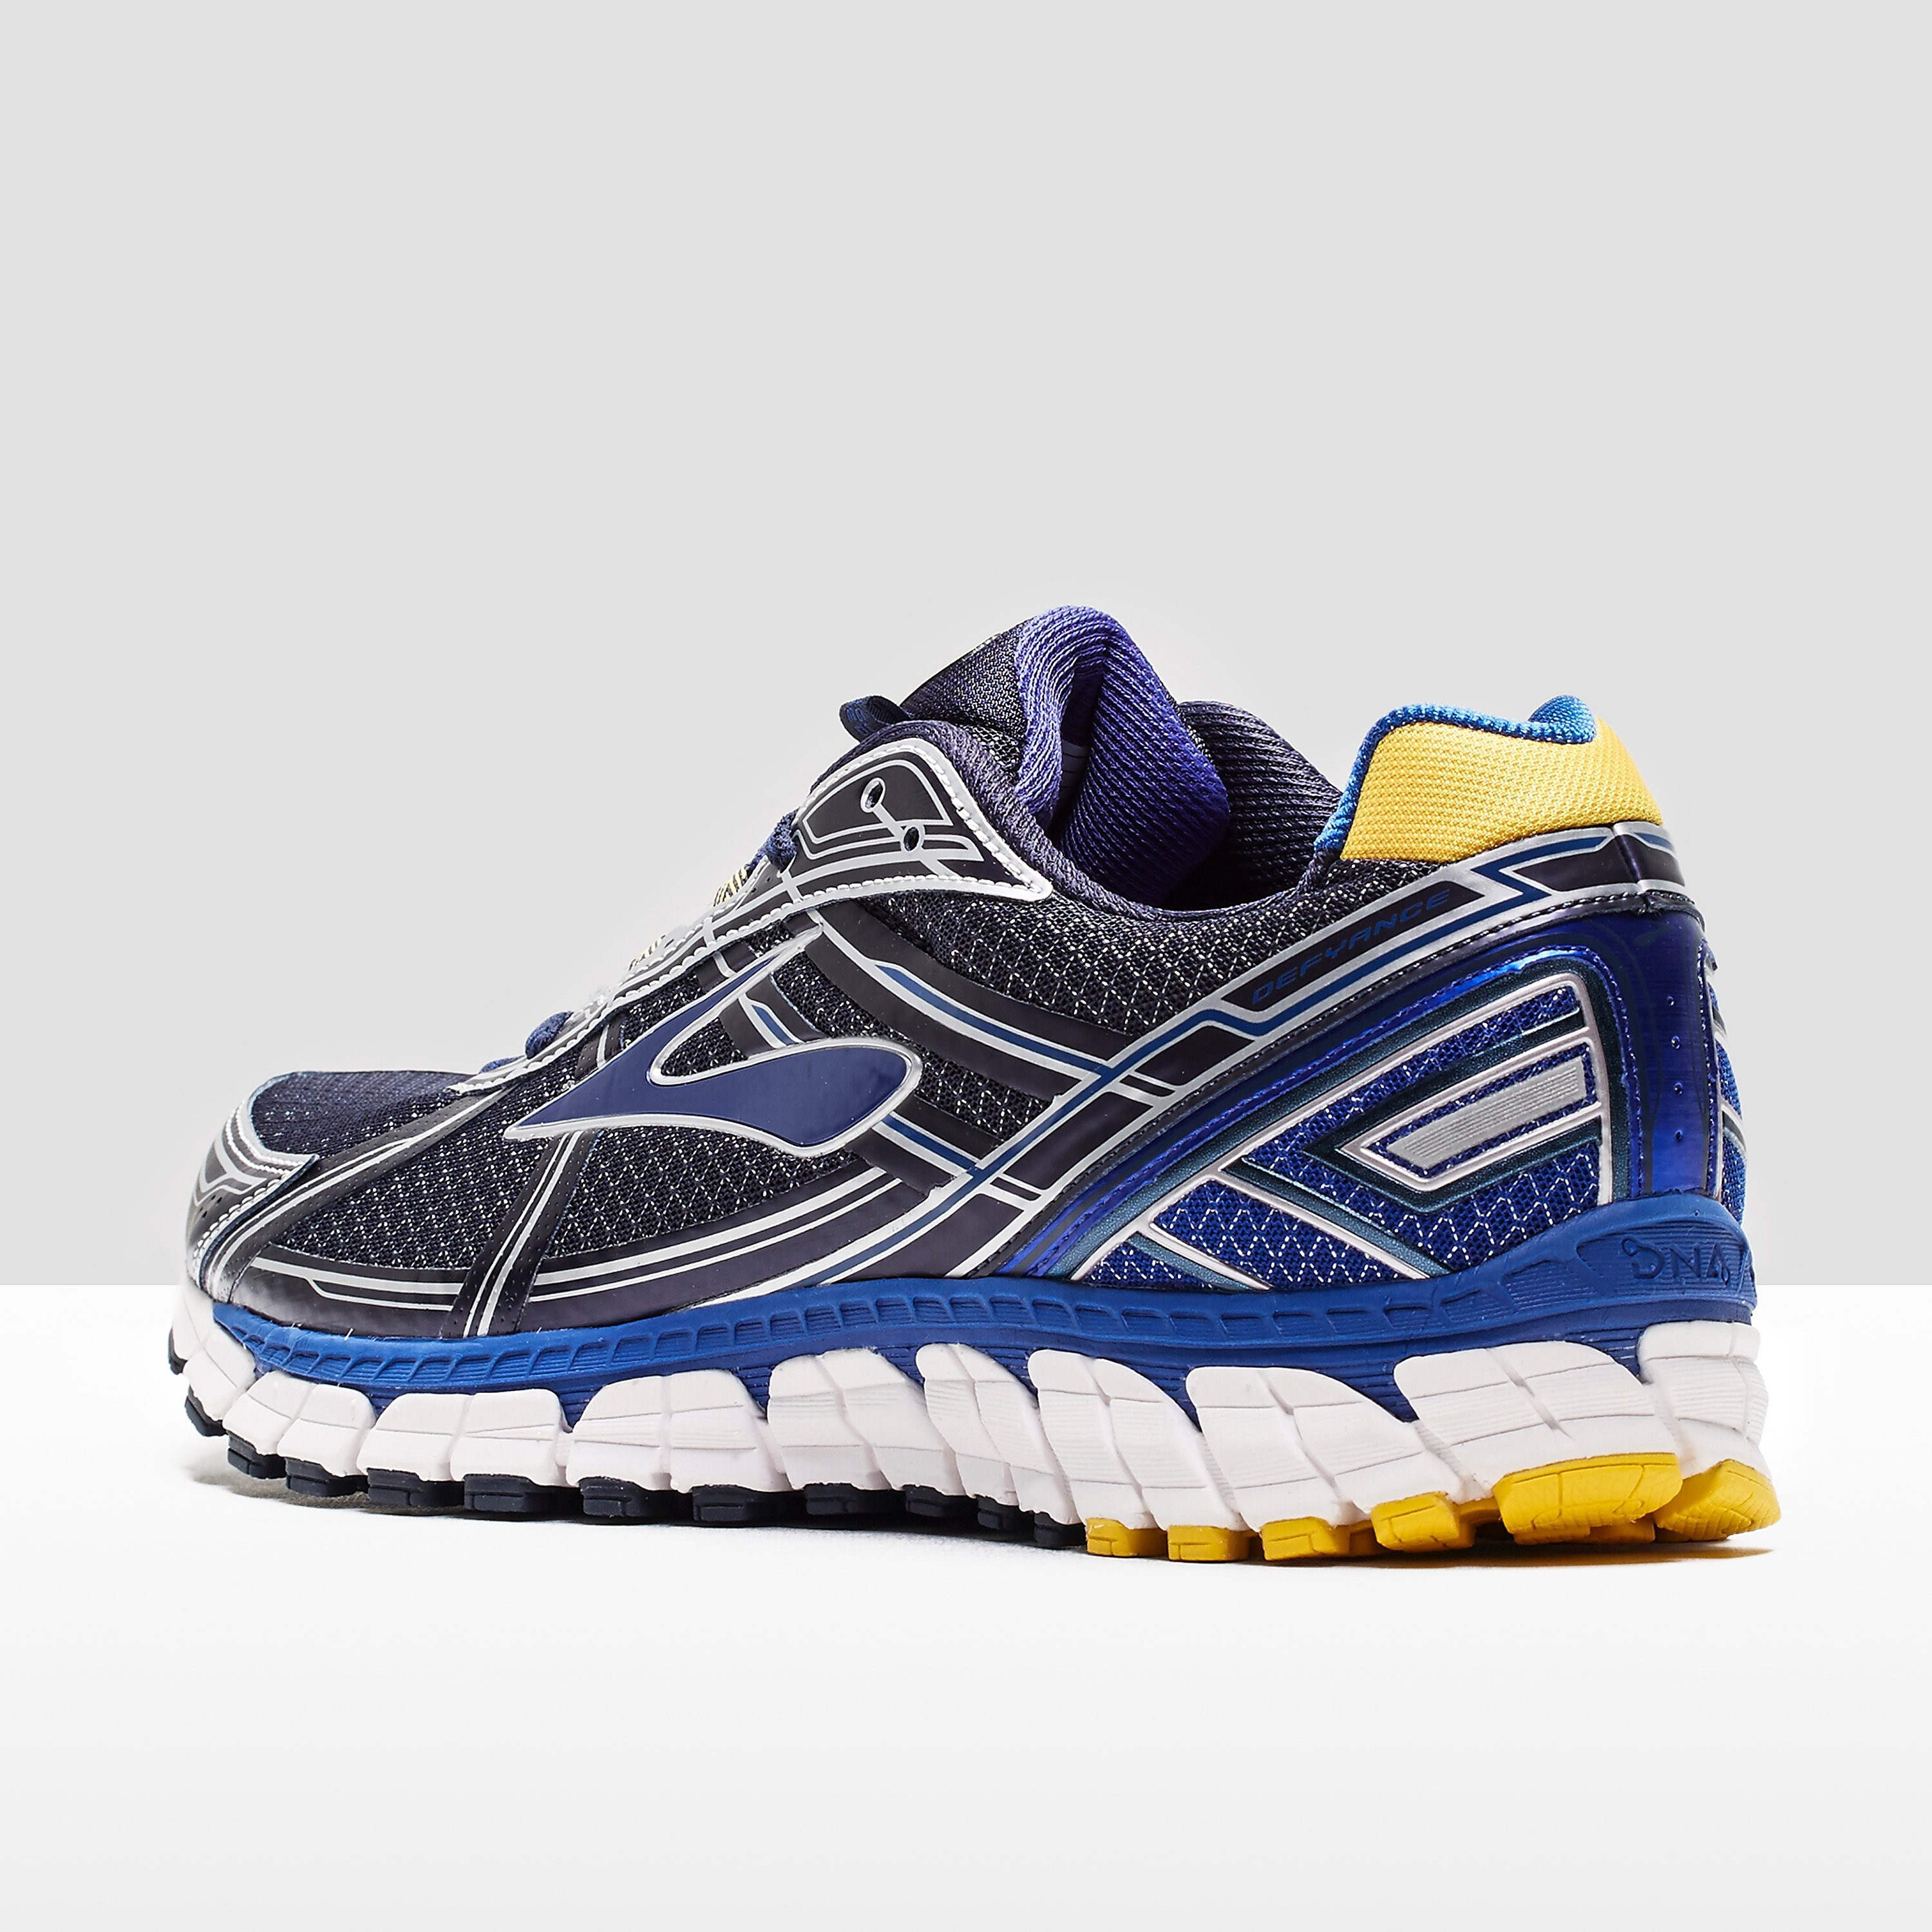 Brooks Defyance 9 Running Shoes